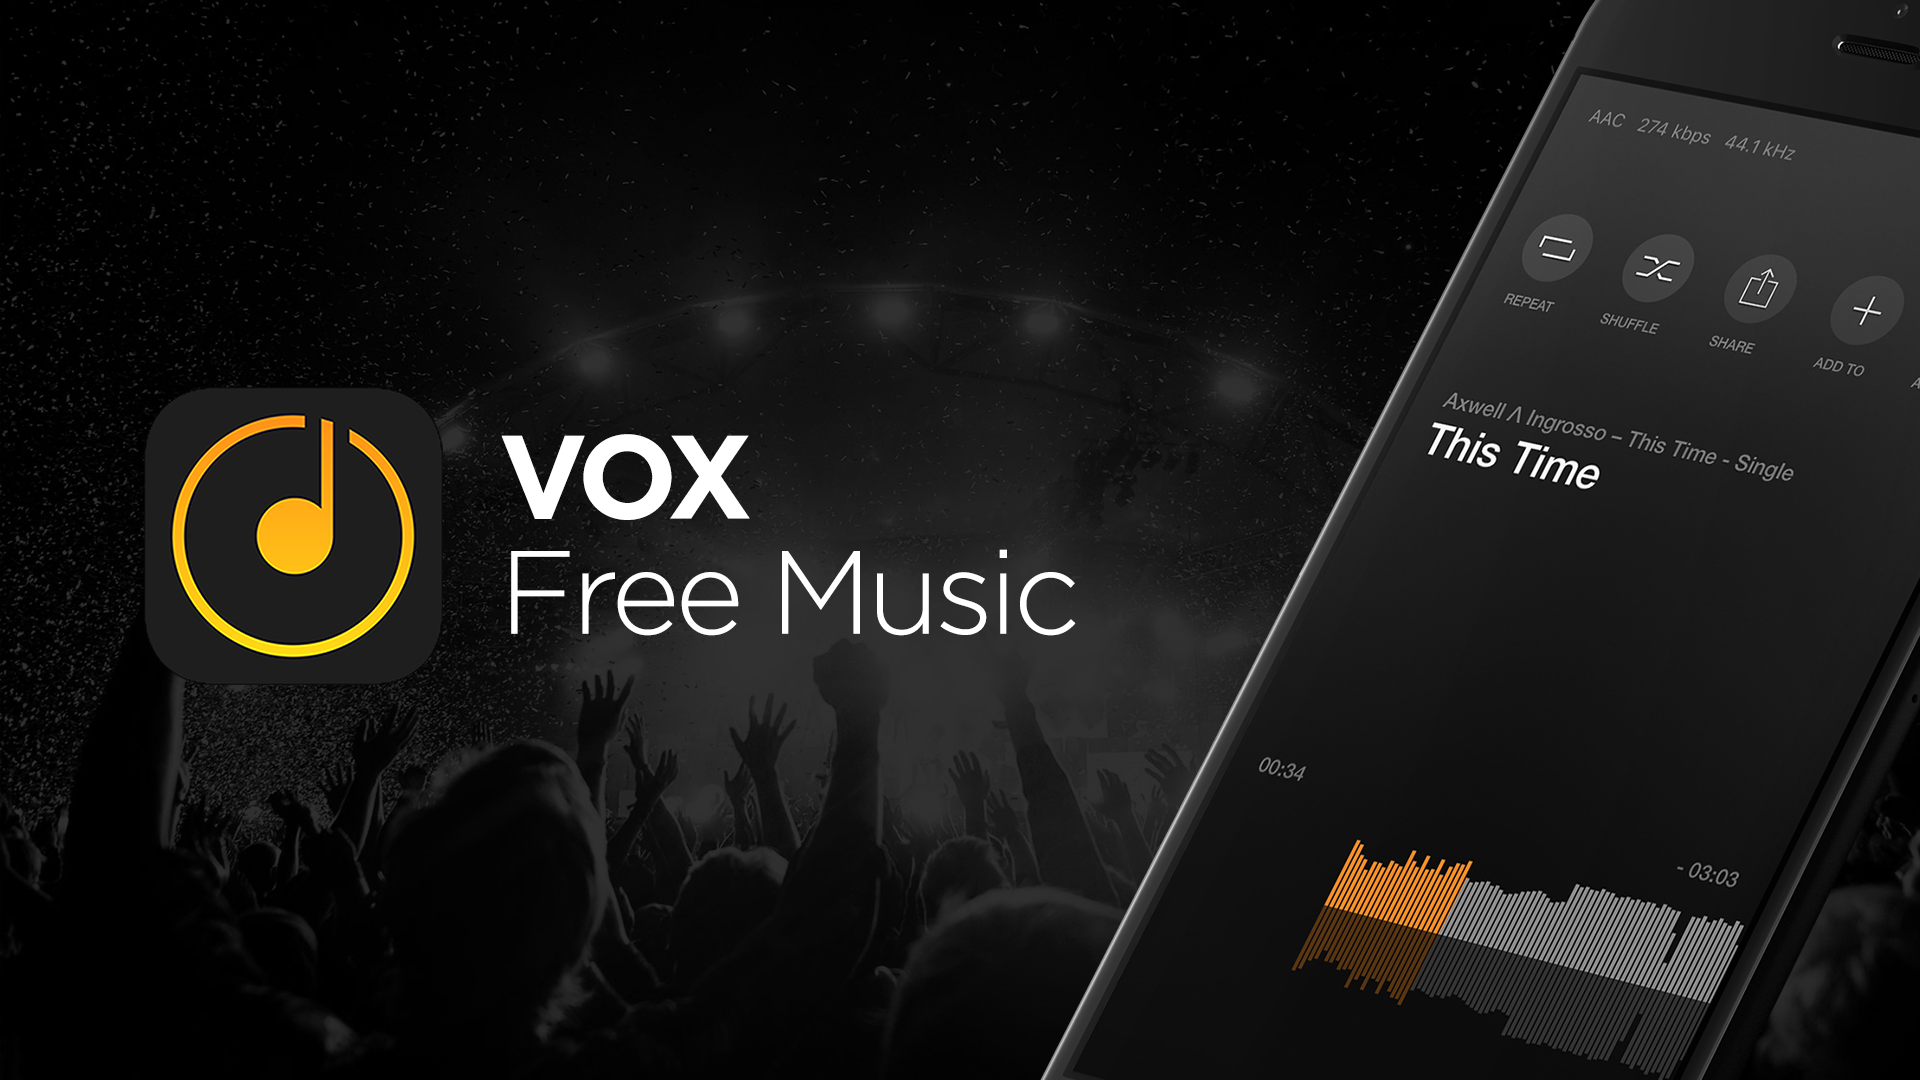 Vox Free Music Released Millions Songs For Free Vox Music Player